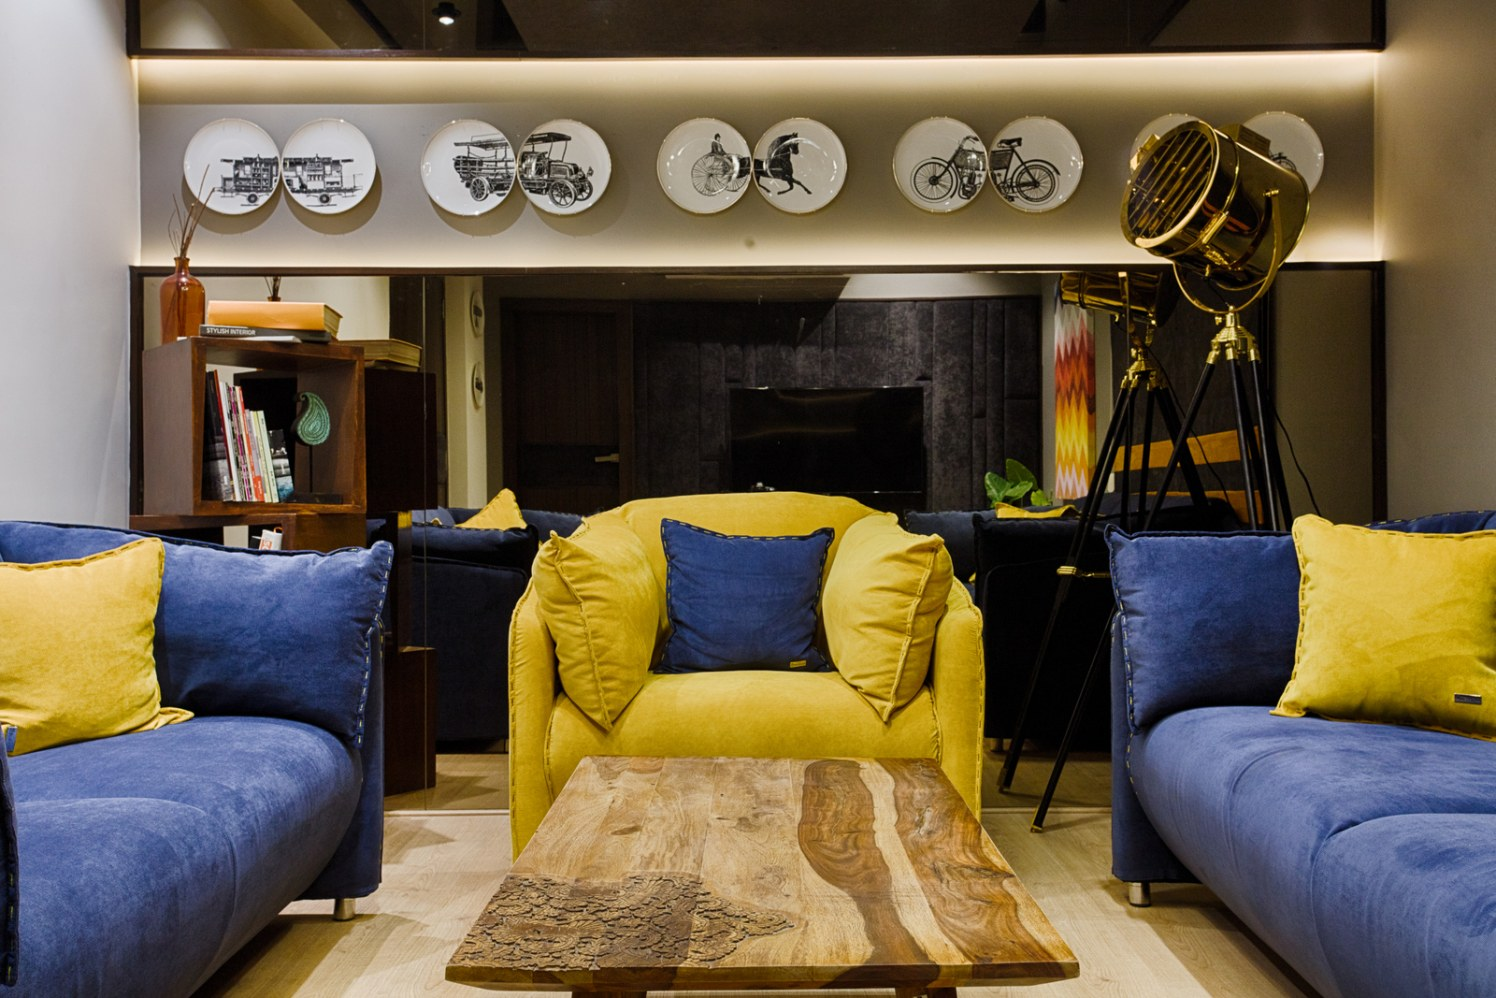 Plate Decor With Vintage Look and golden Side Lamp by Dhaval Patel Living-room Eclectic   Interior Design Photos & Ideas